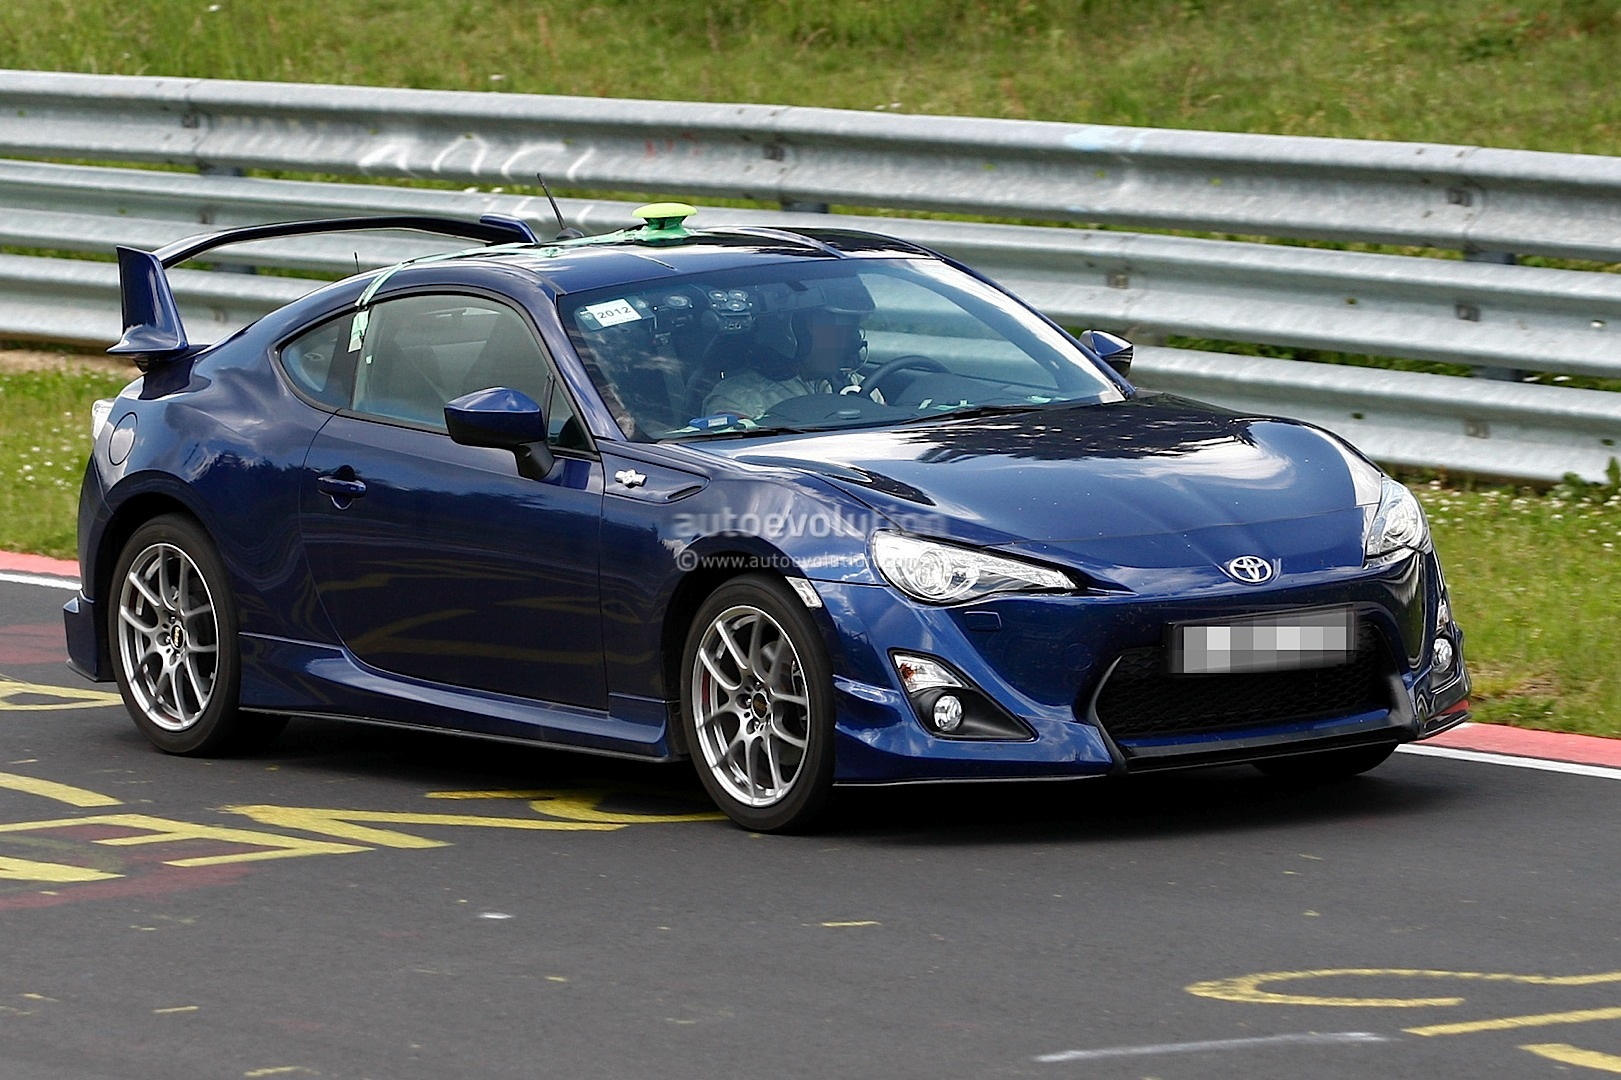 spyshots toyota gt 86 with aero kit at nurburgring autoevolution. Black Bedroom Furniture Sets. Home Design Ideas